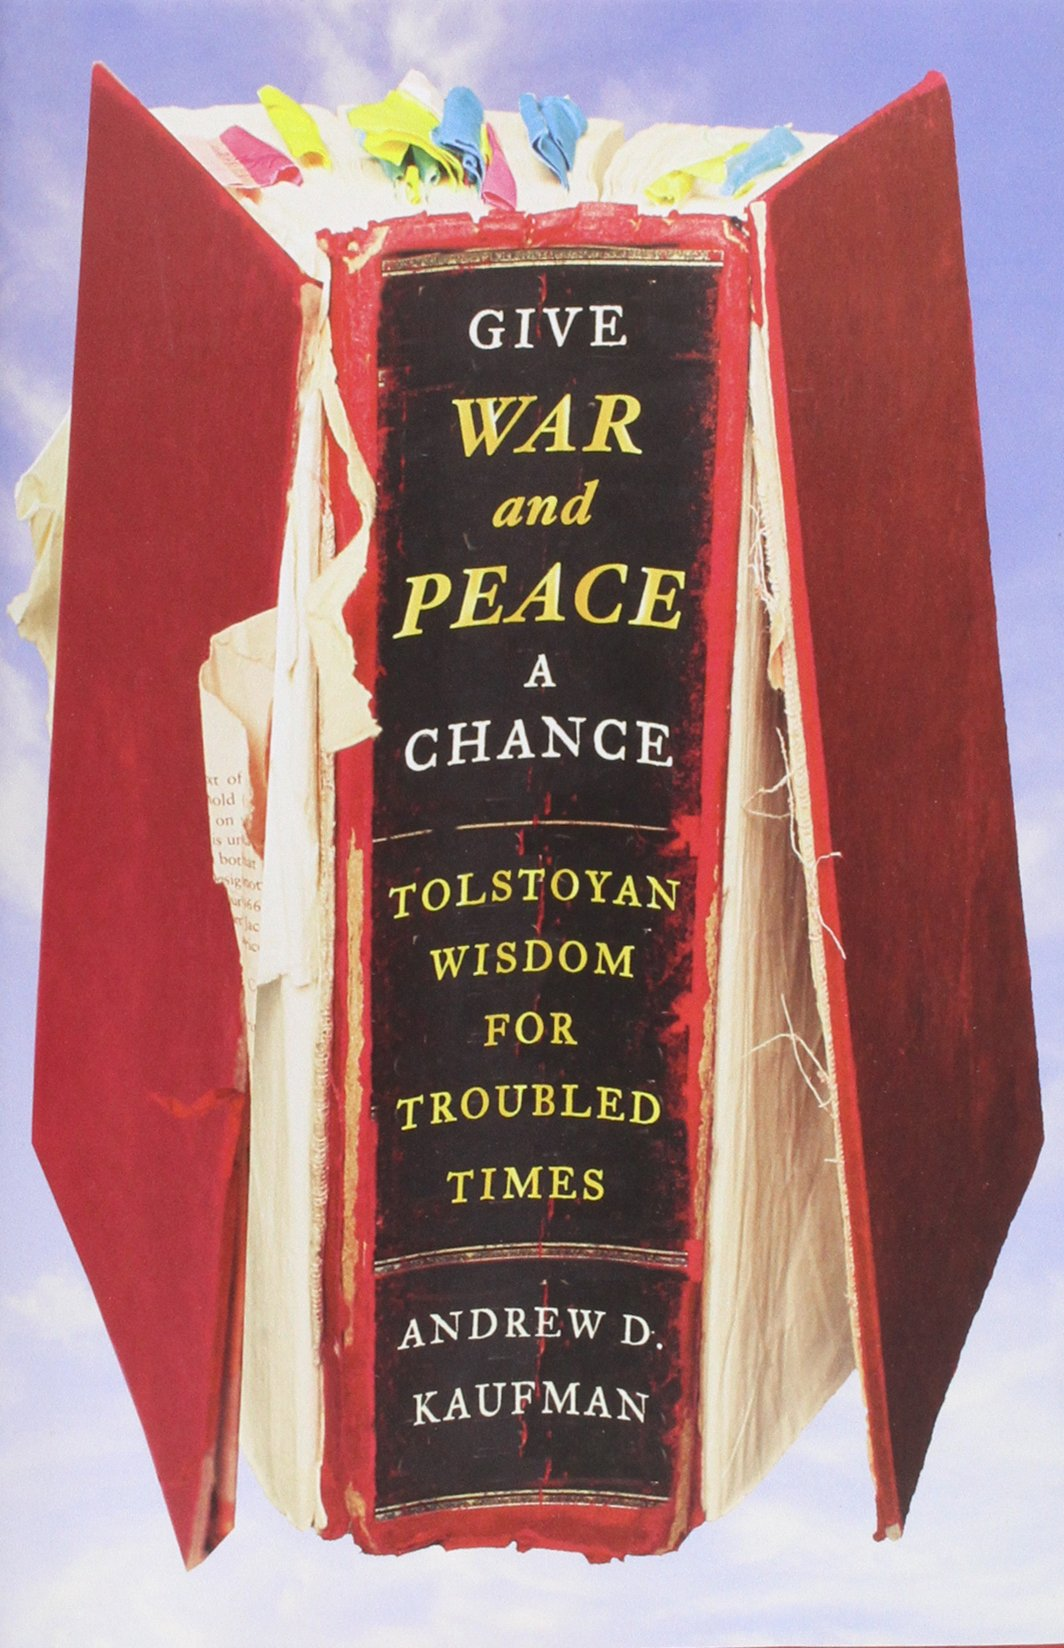 war and peace oxford world s classics amazon co uk leo tolstoy give war and peace a chance tolstoyan wisdom for troubled times